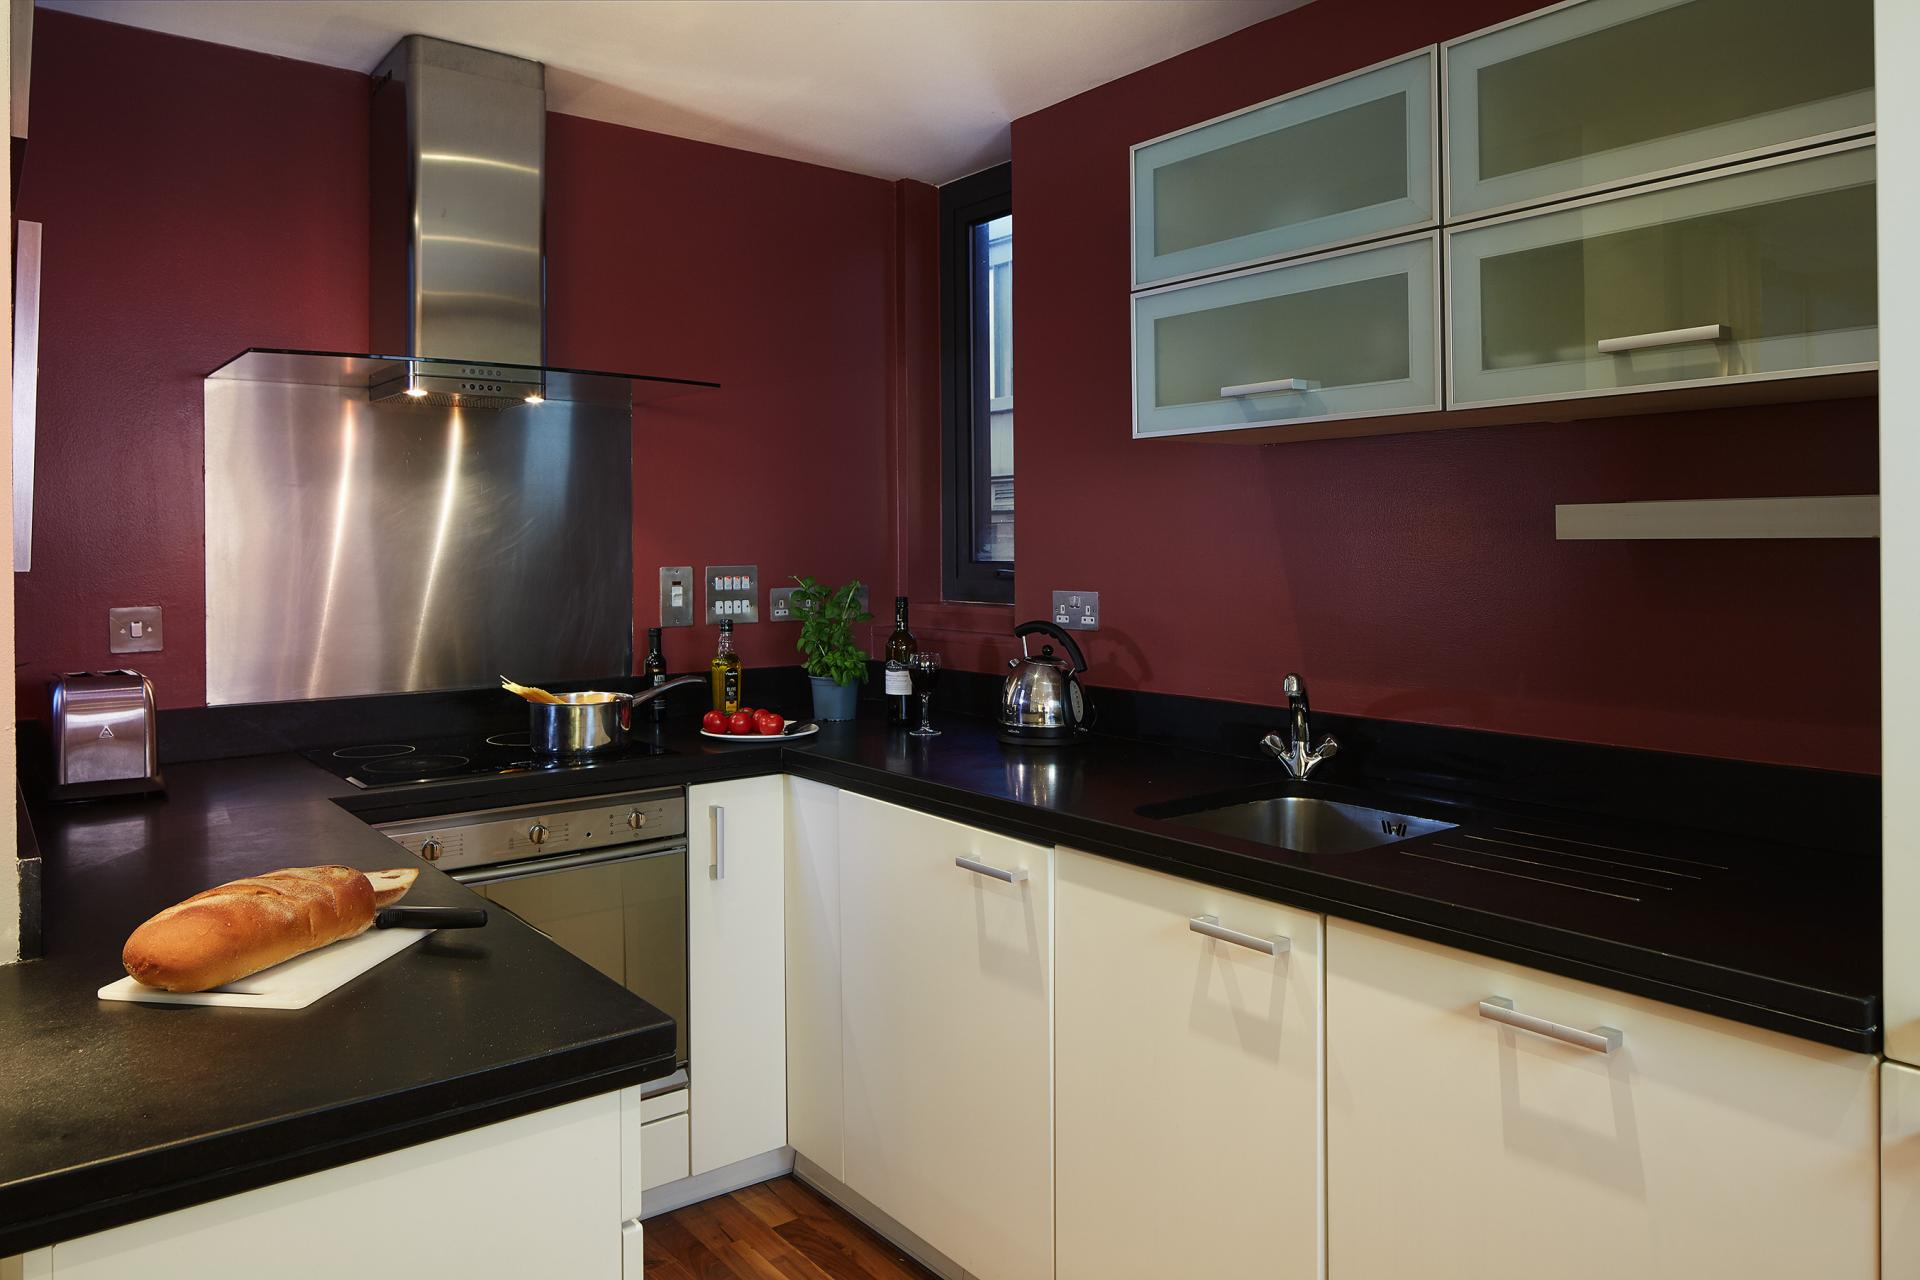 Modern kitchen at Marlin Canary Wharf Apartments, Canary Wharf, London - Citybase Apartments